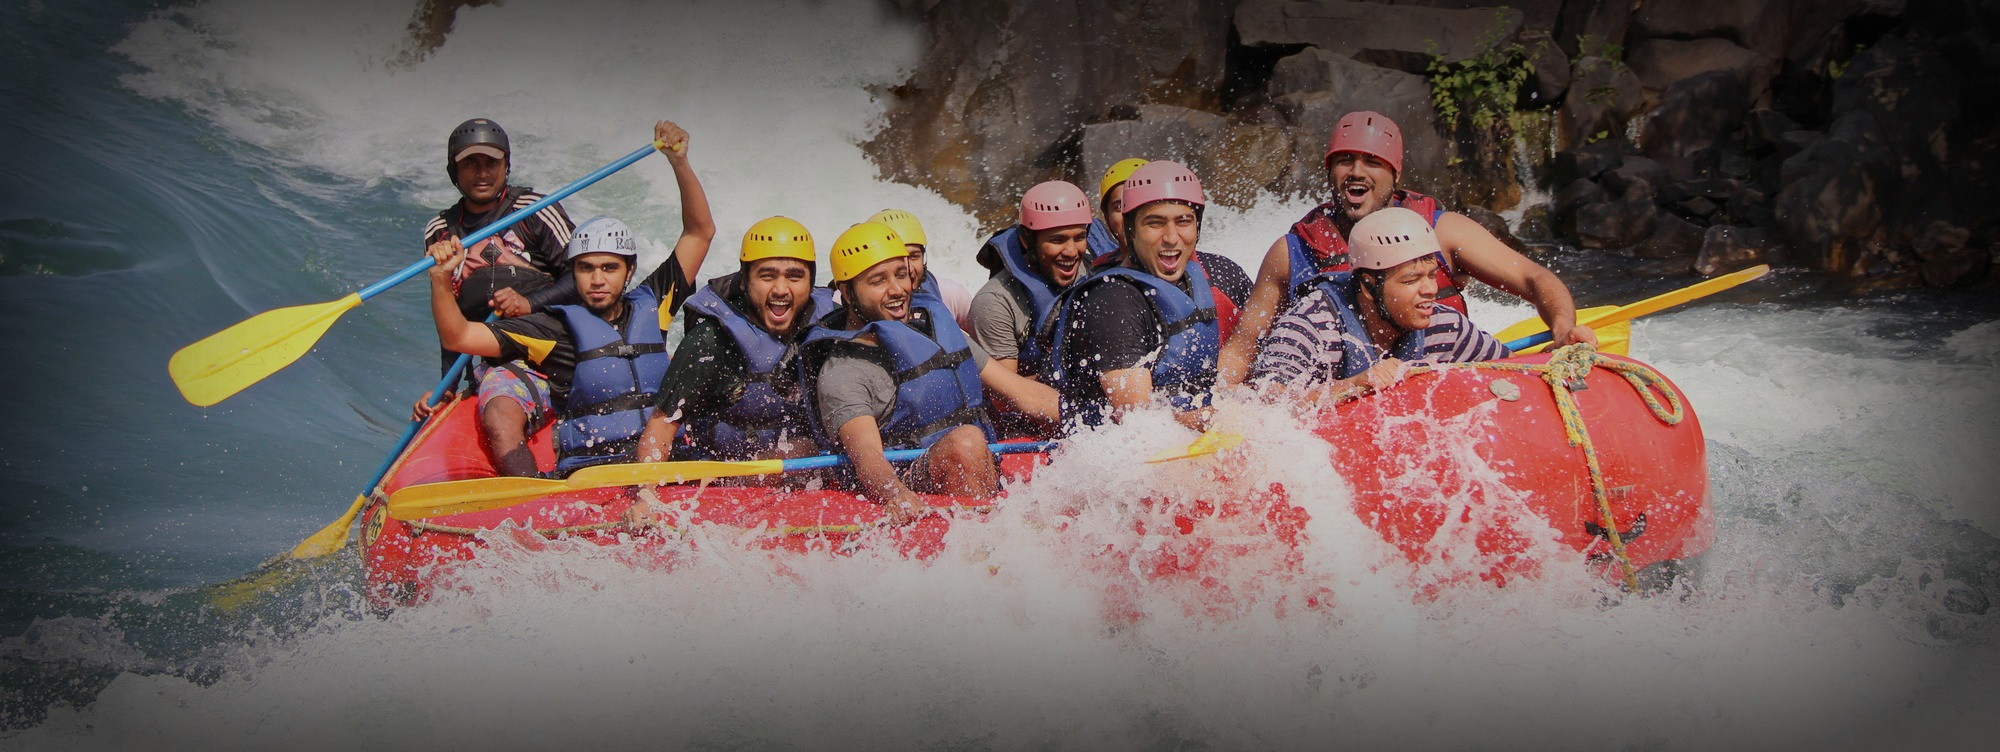 Top 4 Things to Do on Dandeli Adventure Tour